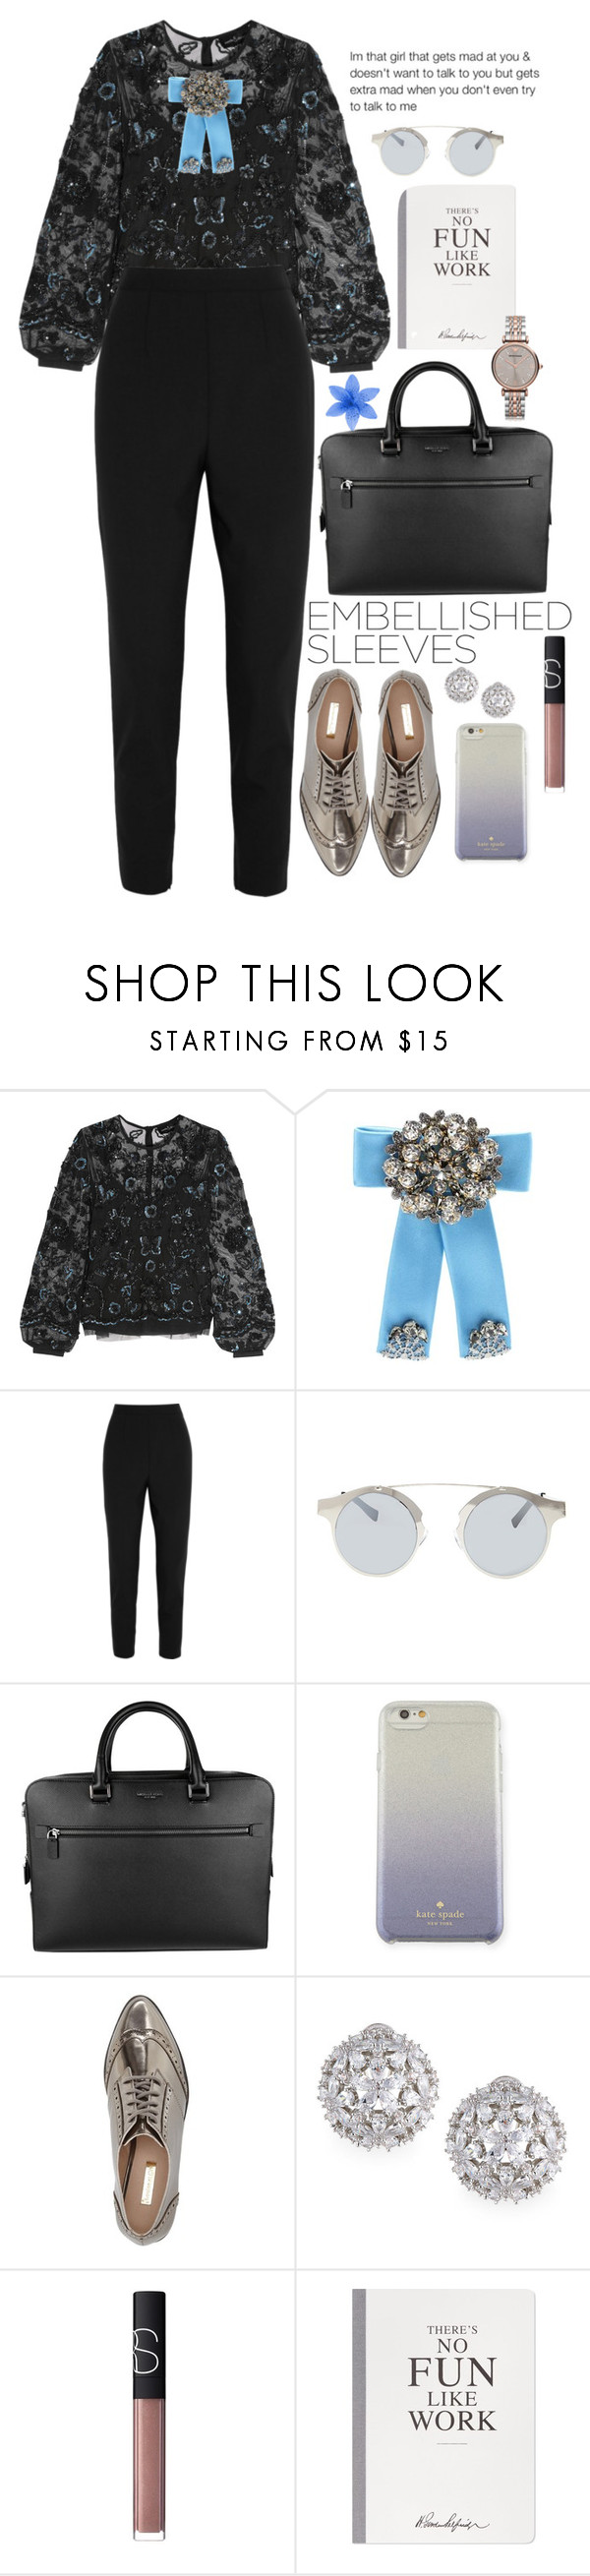 """°"" by jordan-mobley ❤ liked on Polyvore featuring Needle & Thread, Dolce&Gabbana, Forever 21, Michael Kors, Kate Spade, Louise et Cie, Fallon, NARS Cosmetics, Selfridges and Emporio Armani"